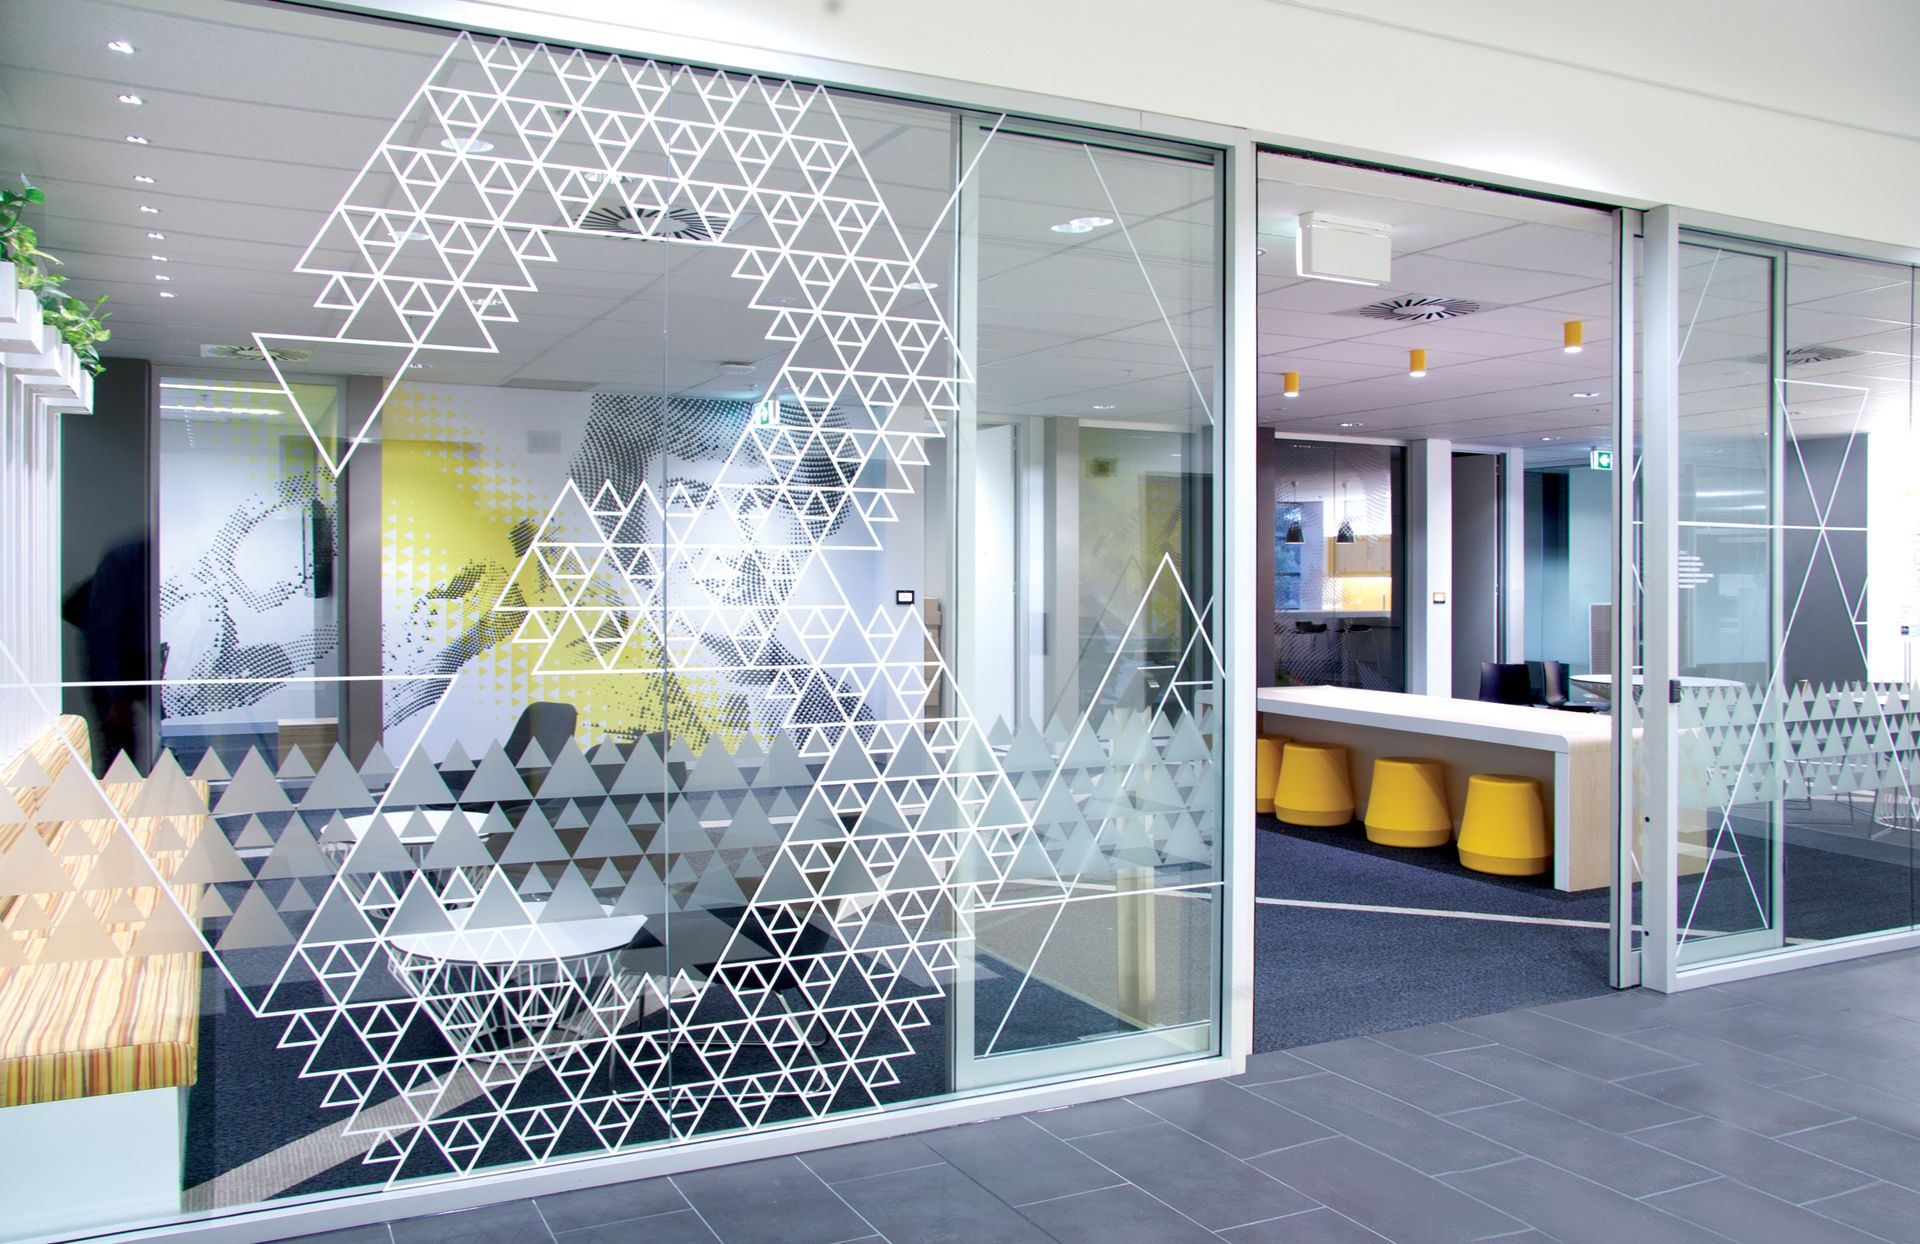 THERE design 3M level 3 wall graphics murs cloisons verre